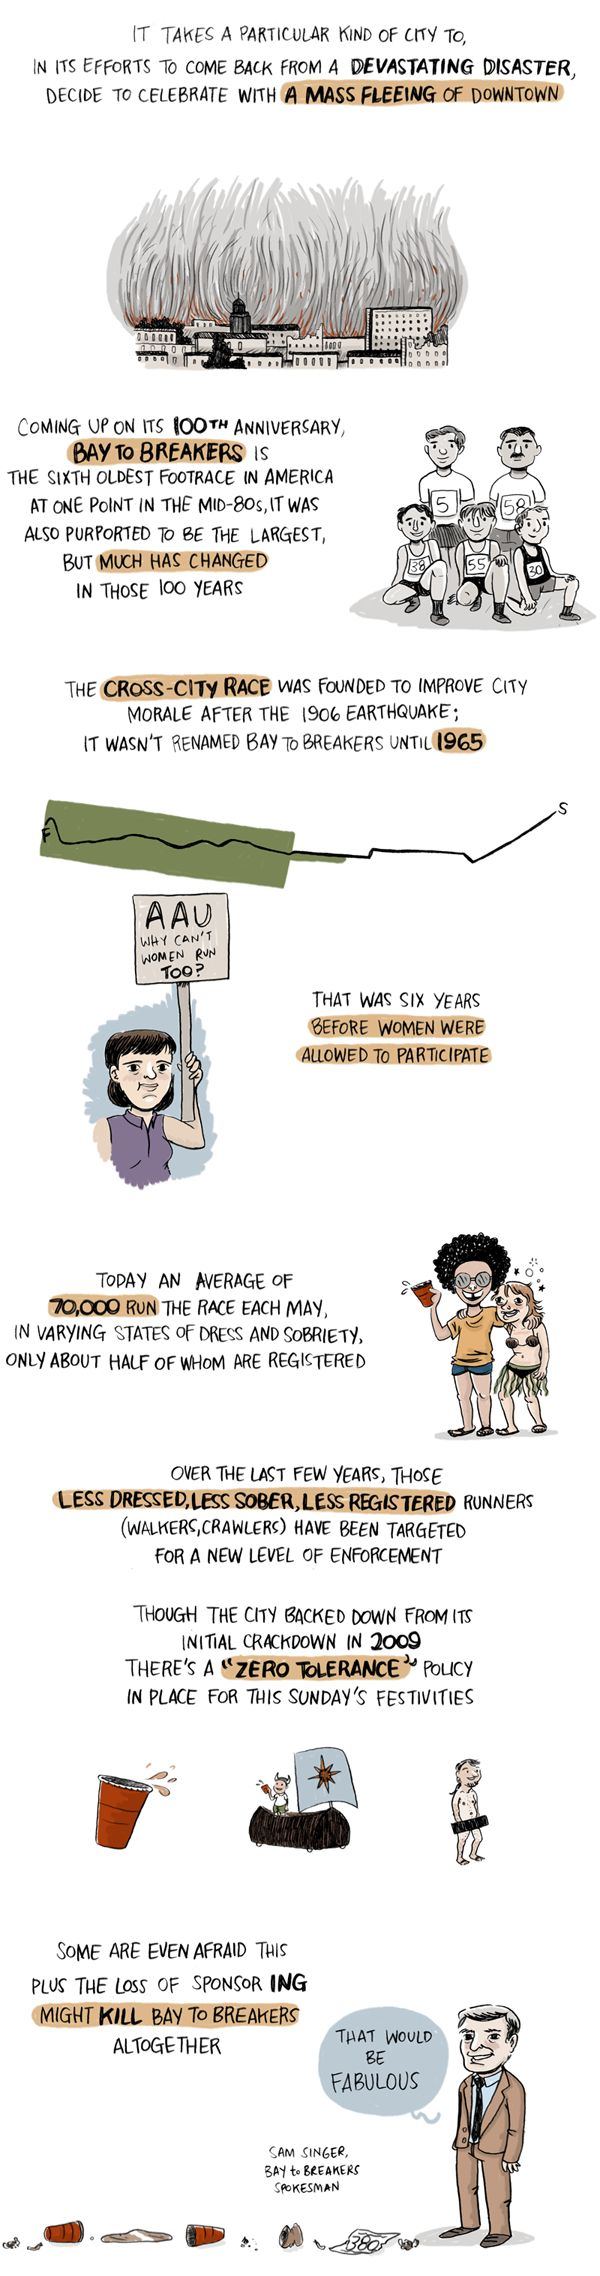 Bay to Breakers - An Illustrated History of Bay to Breakers | 7x7